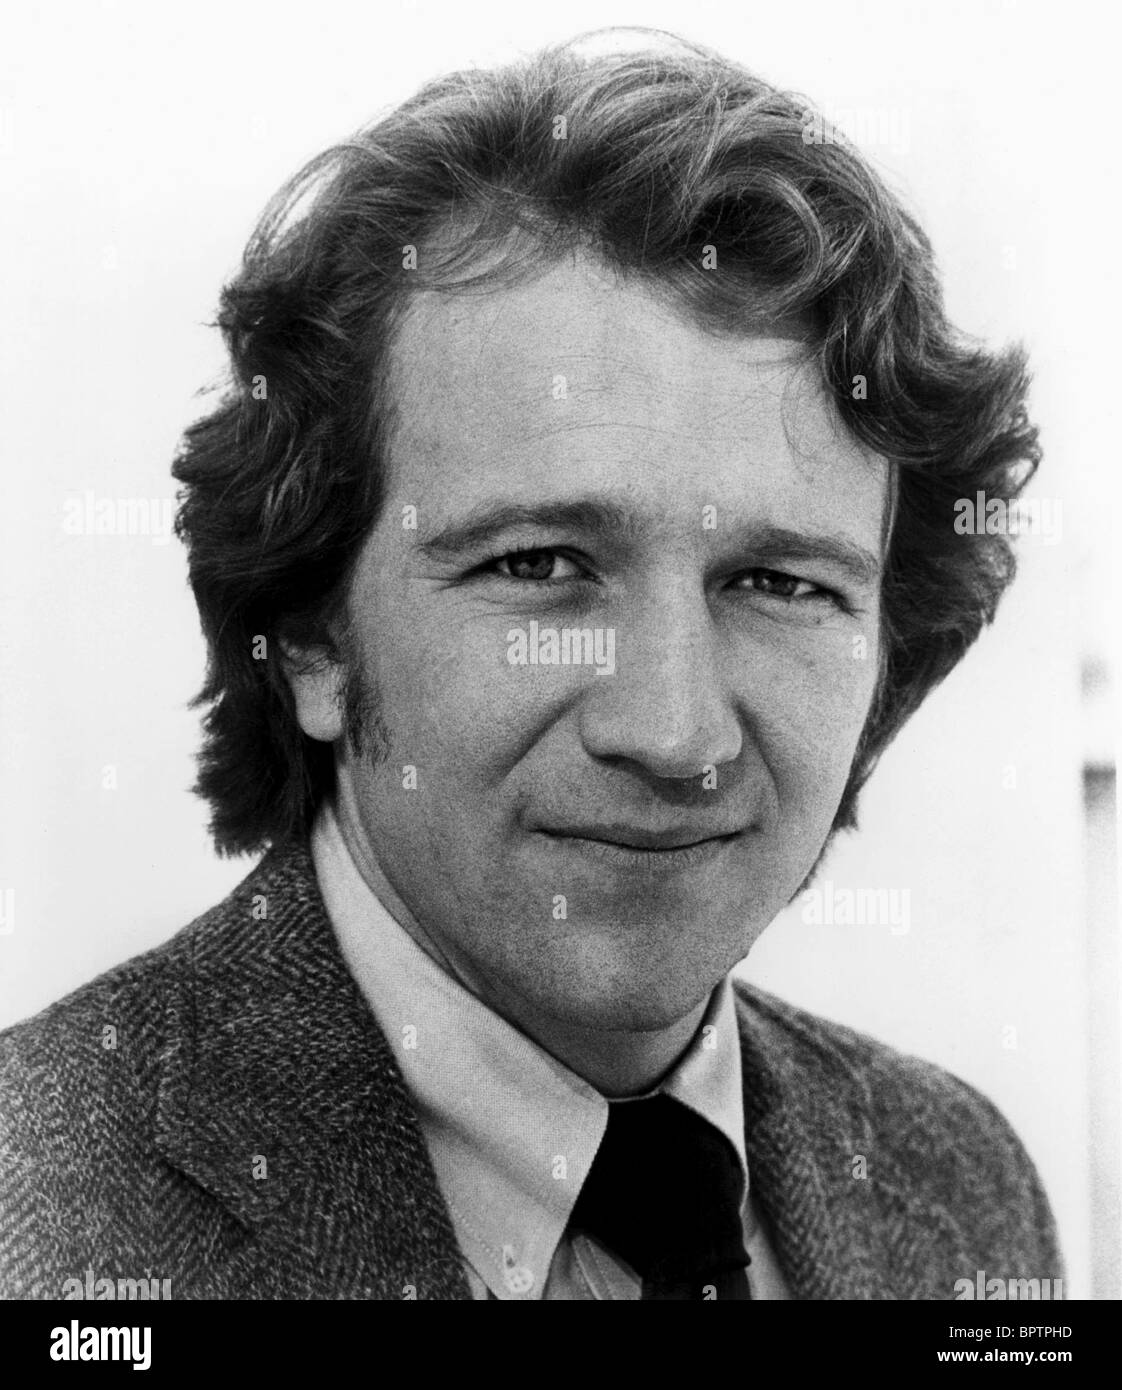 CRAIG WASSON ACTOR (1981) - Stock Image